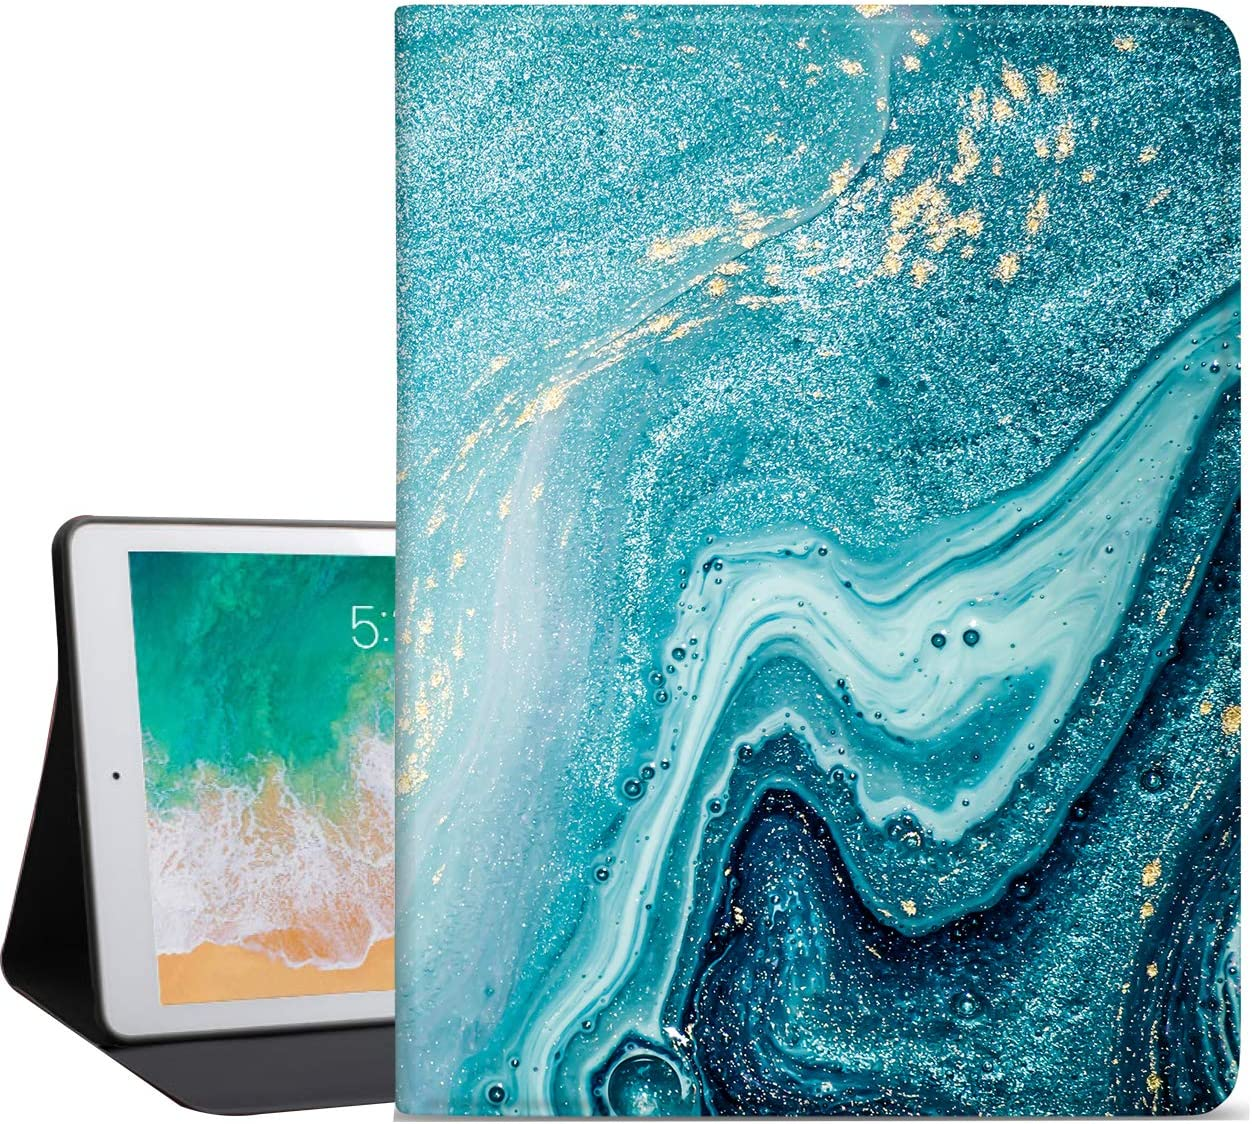 Sahoprt ipad 10.2 Case 2019/2020, ipad 7th/8th Generation Case, Premium Leather Soft TPU Back Smart Protective Cover, Adjustable Stand with Free Angle, Auto Wake/Sleep, Cyan Marble